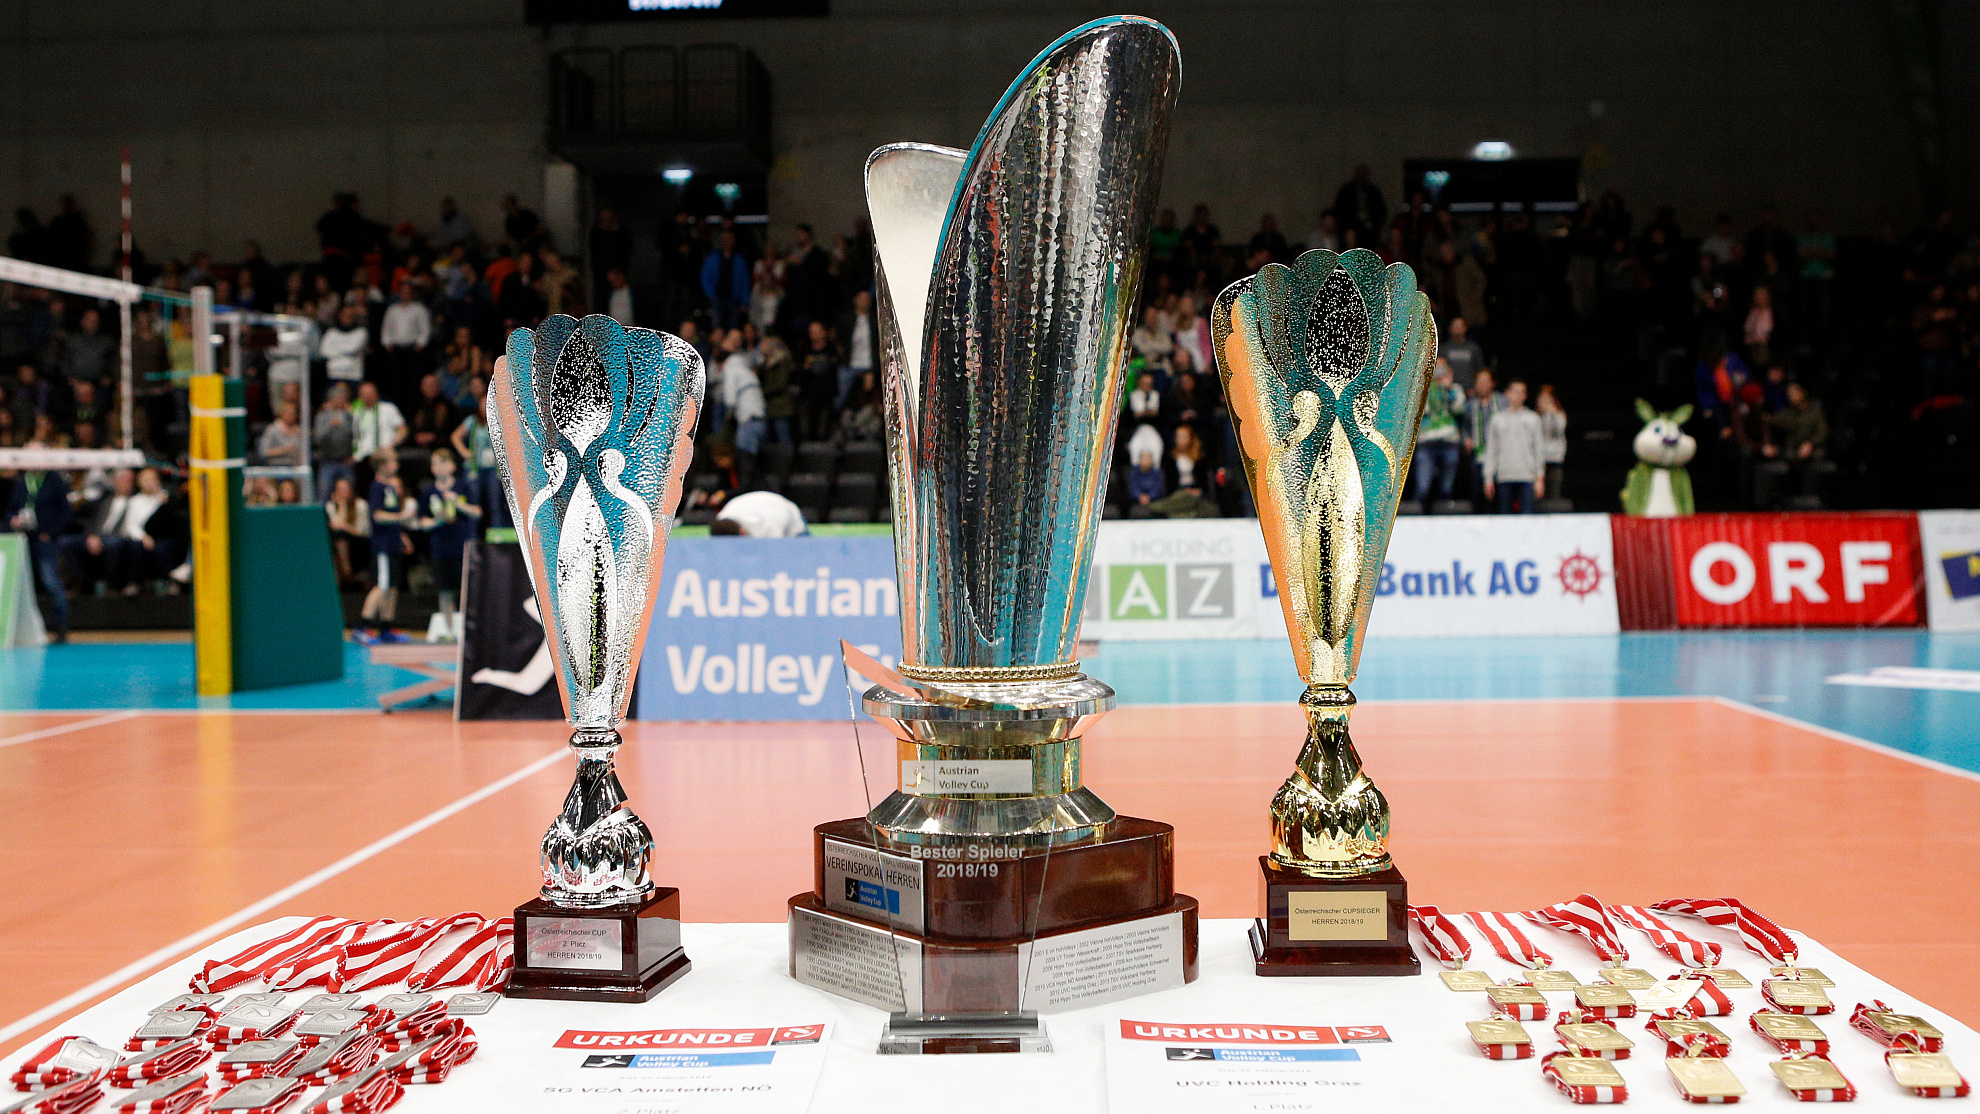 Austrian Volley Cup - FOTO © GEPA pictures/David Rodriguez Anchuelo